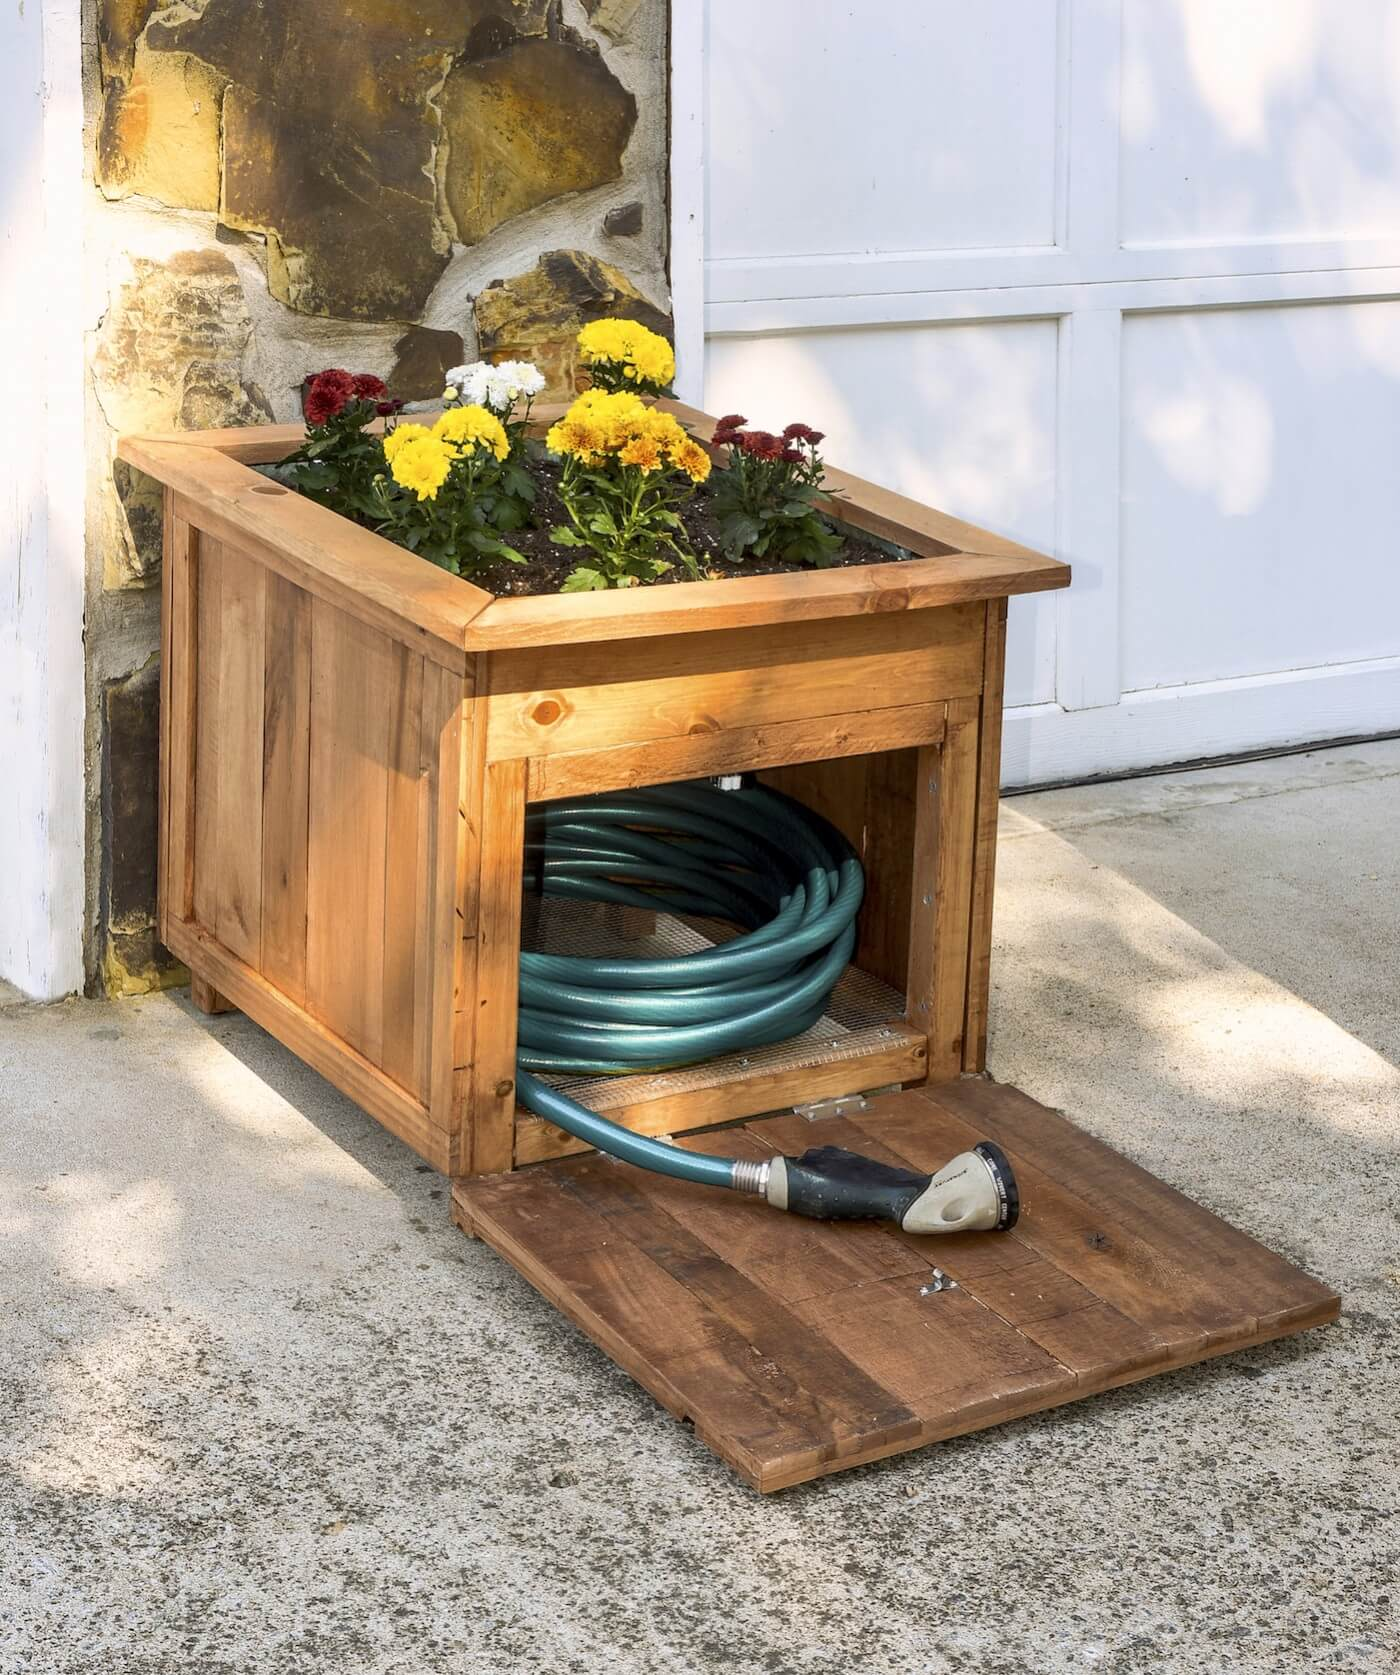 Planting Tables For Sale Planter Box Plans Insteading